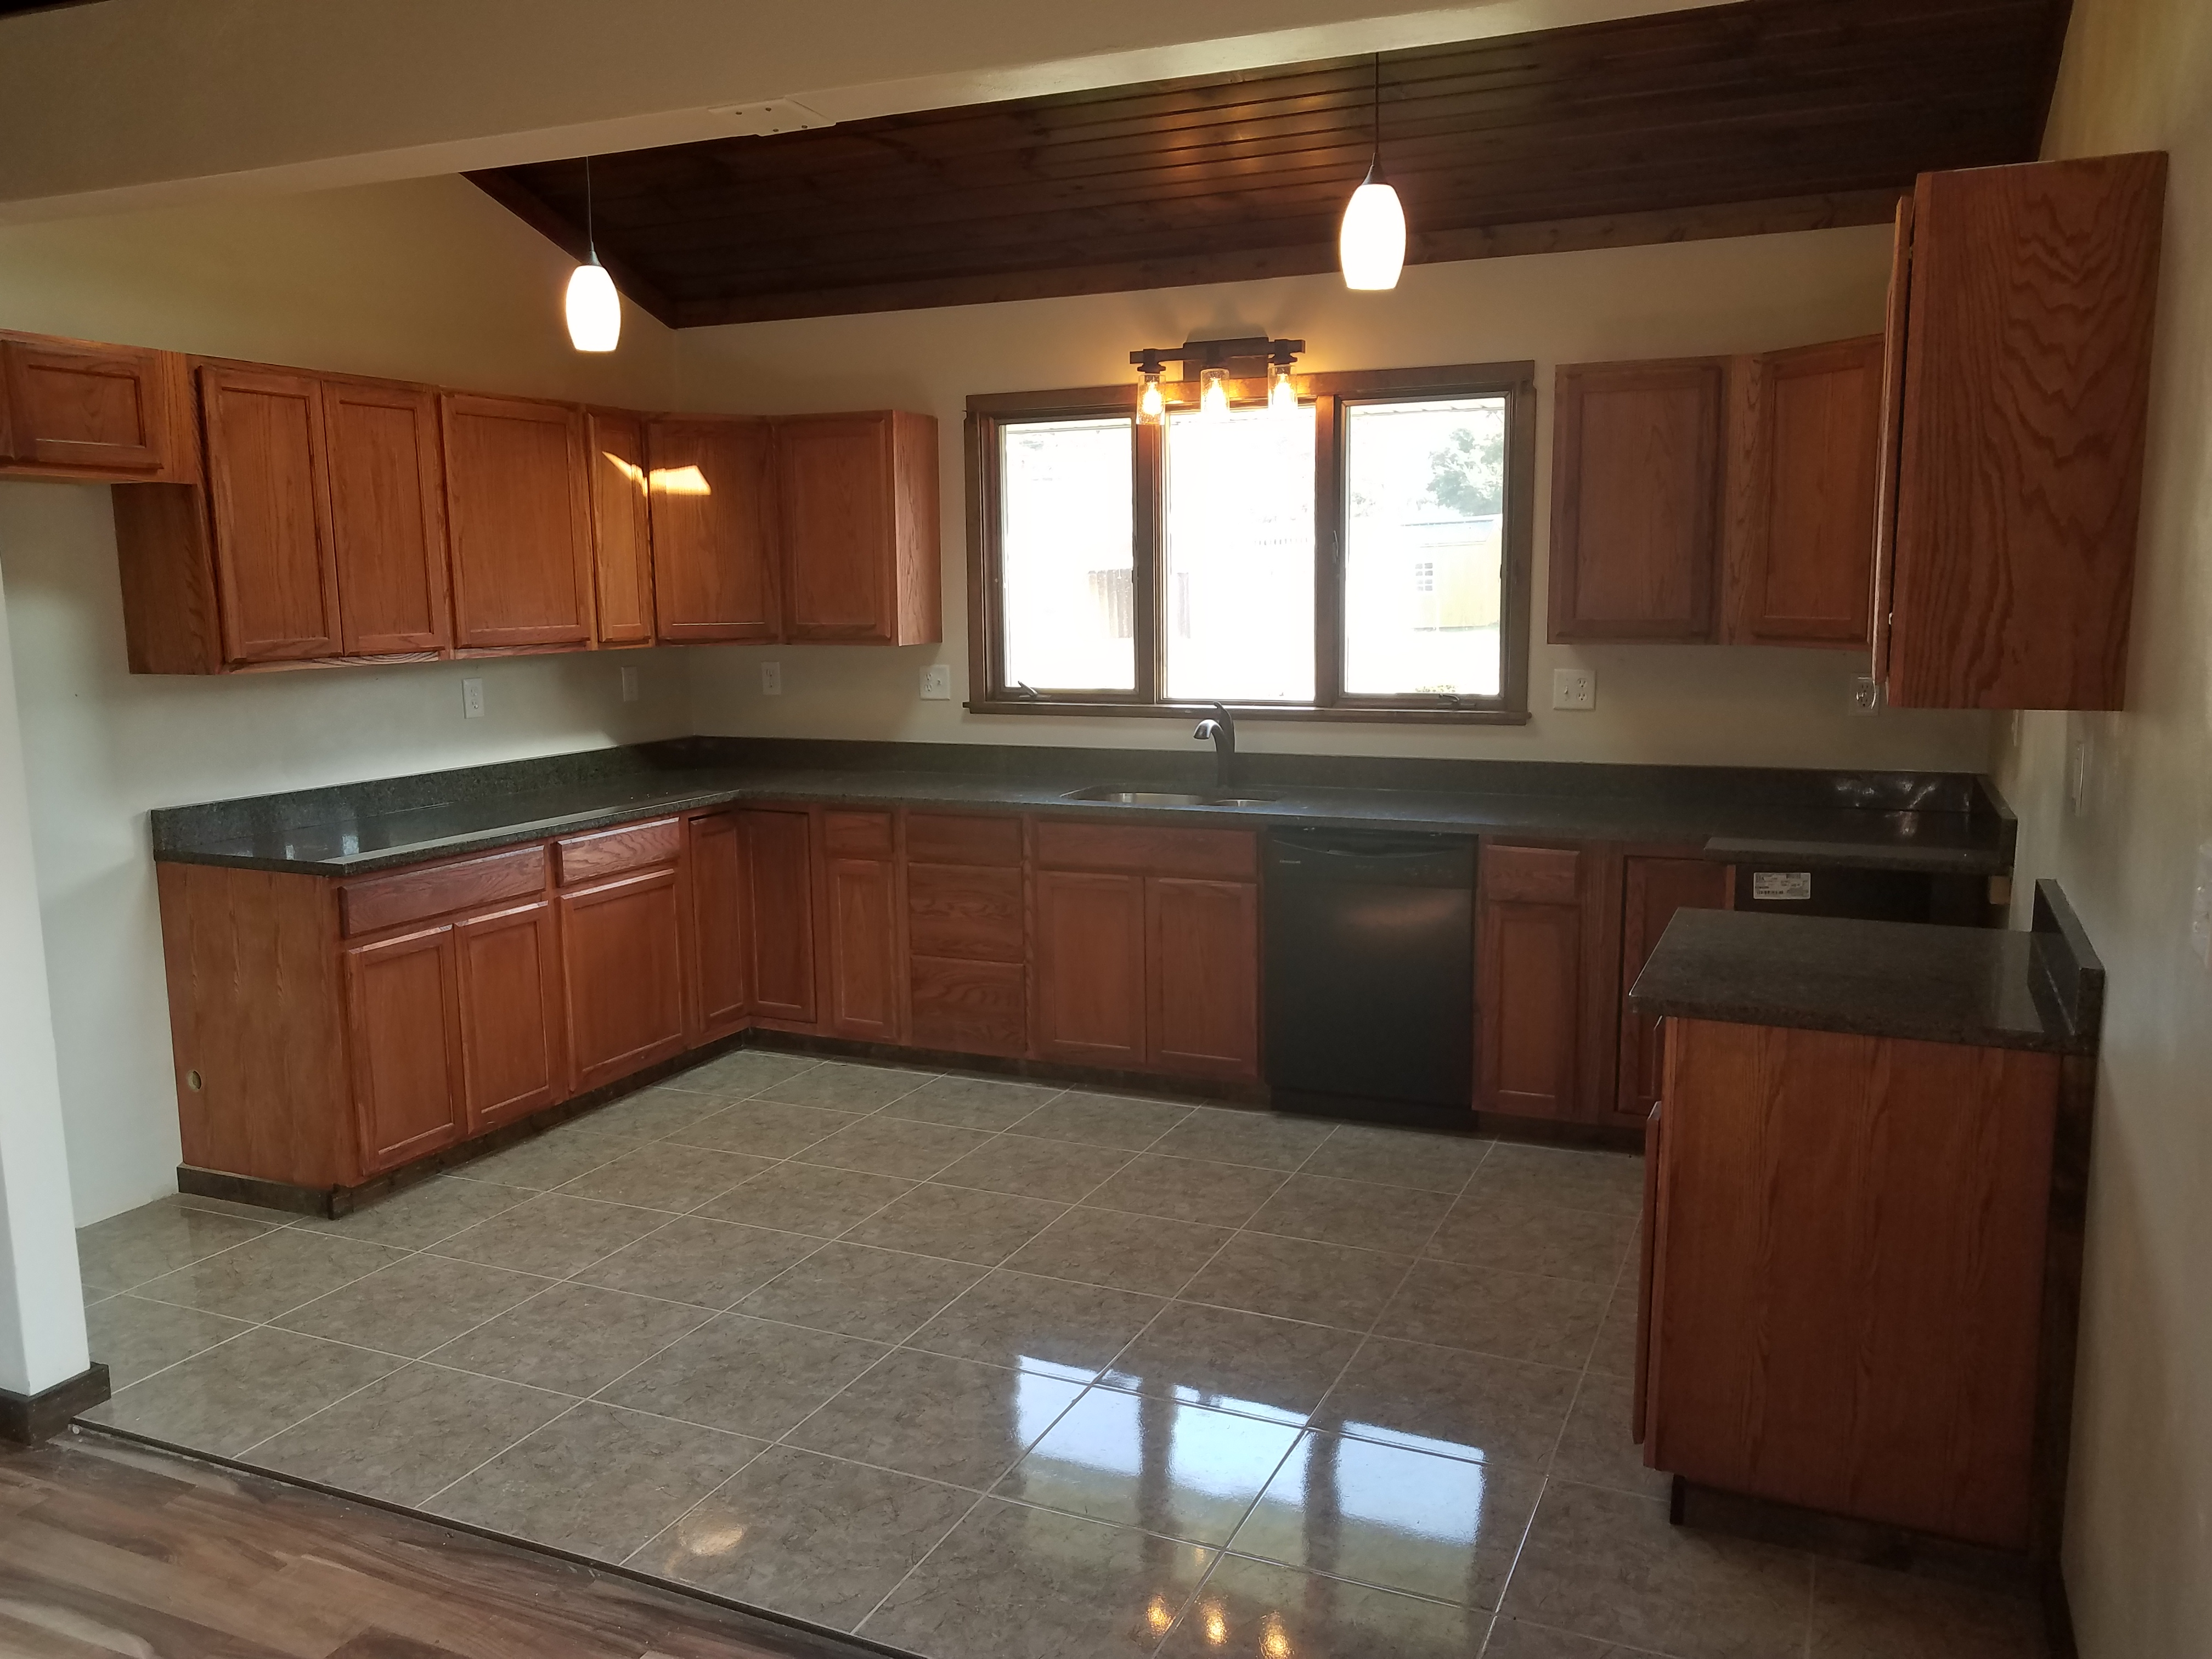 about our Kitchen Remodel